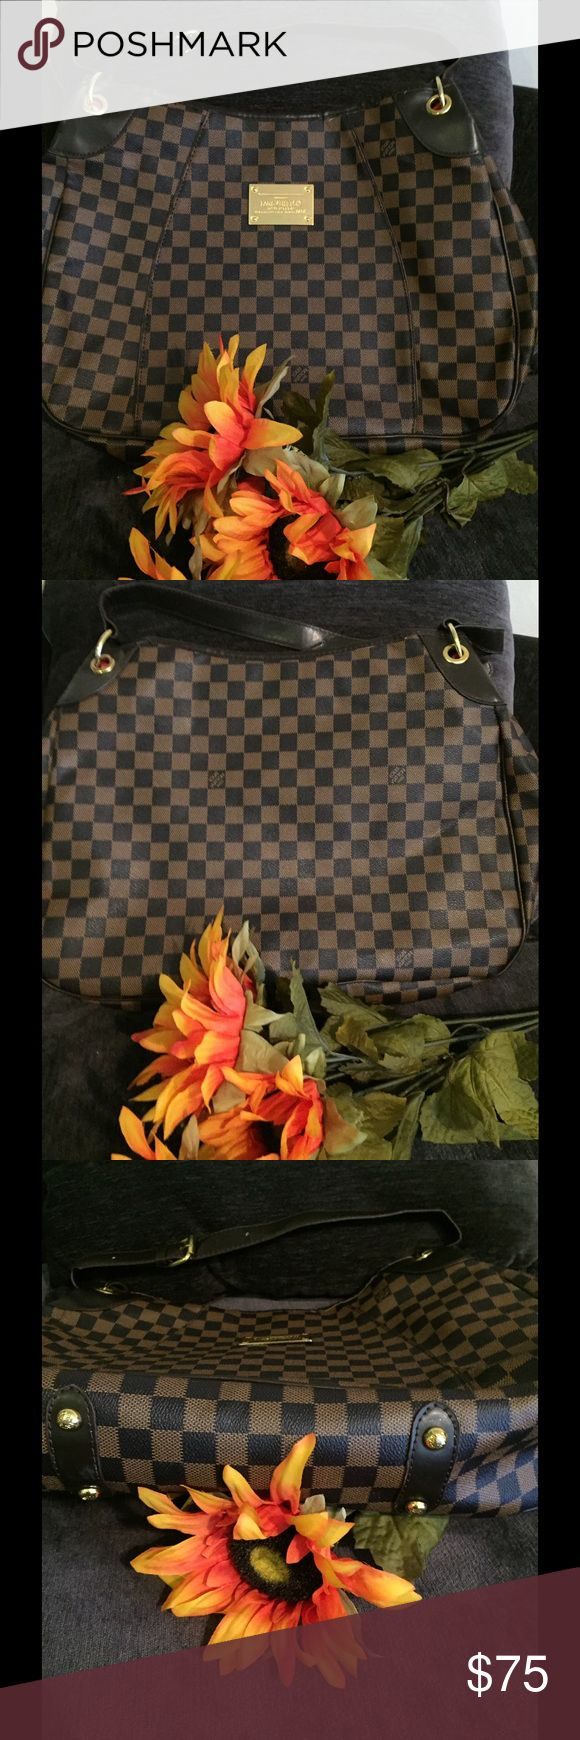 🆕Listing - Fashion Purse Fashion Shoulder Bag checkered design. Says Louis Vuitton 🚫 but NOT authentic. Inside zipper pocket.  Never carried. Bags Shoulder Bags